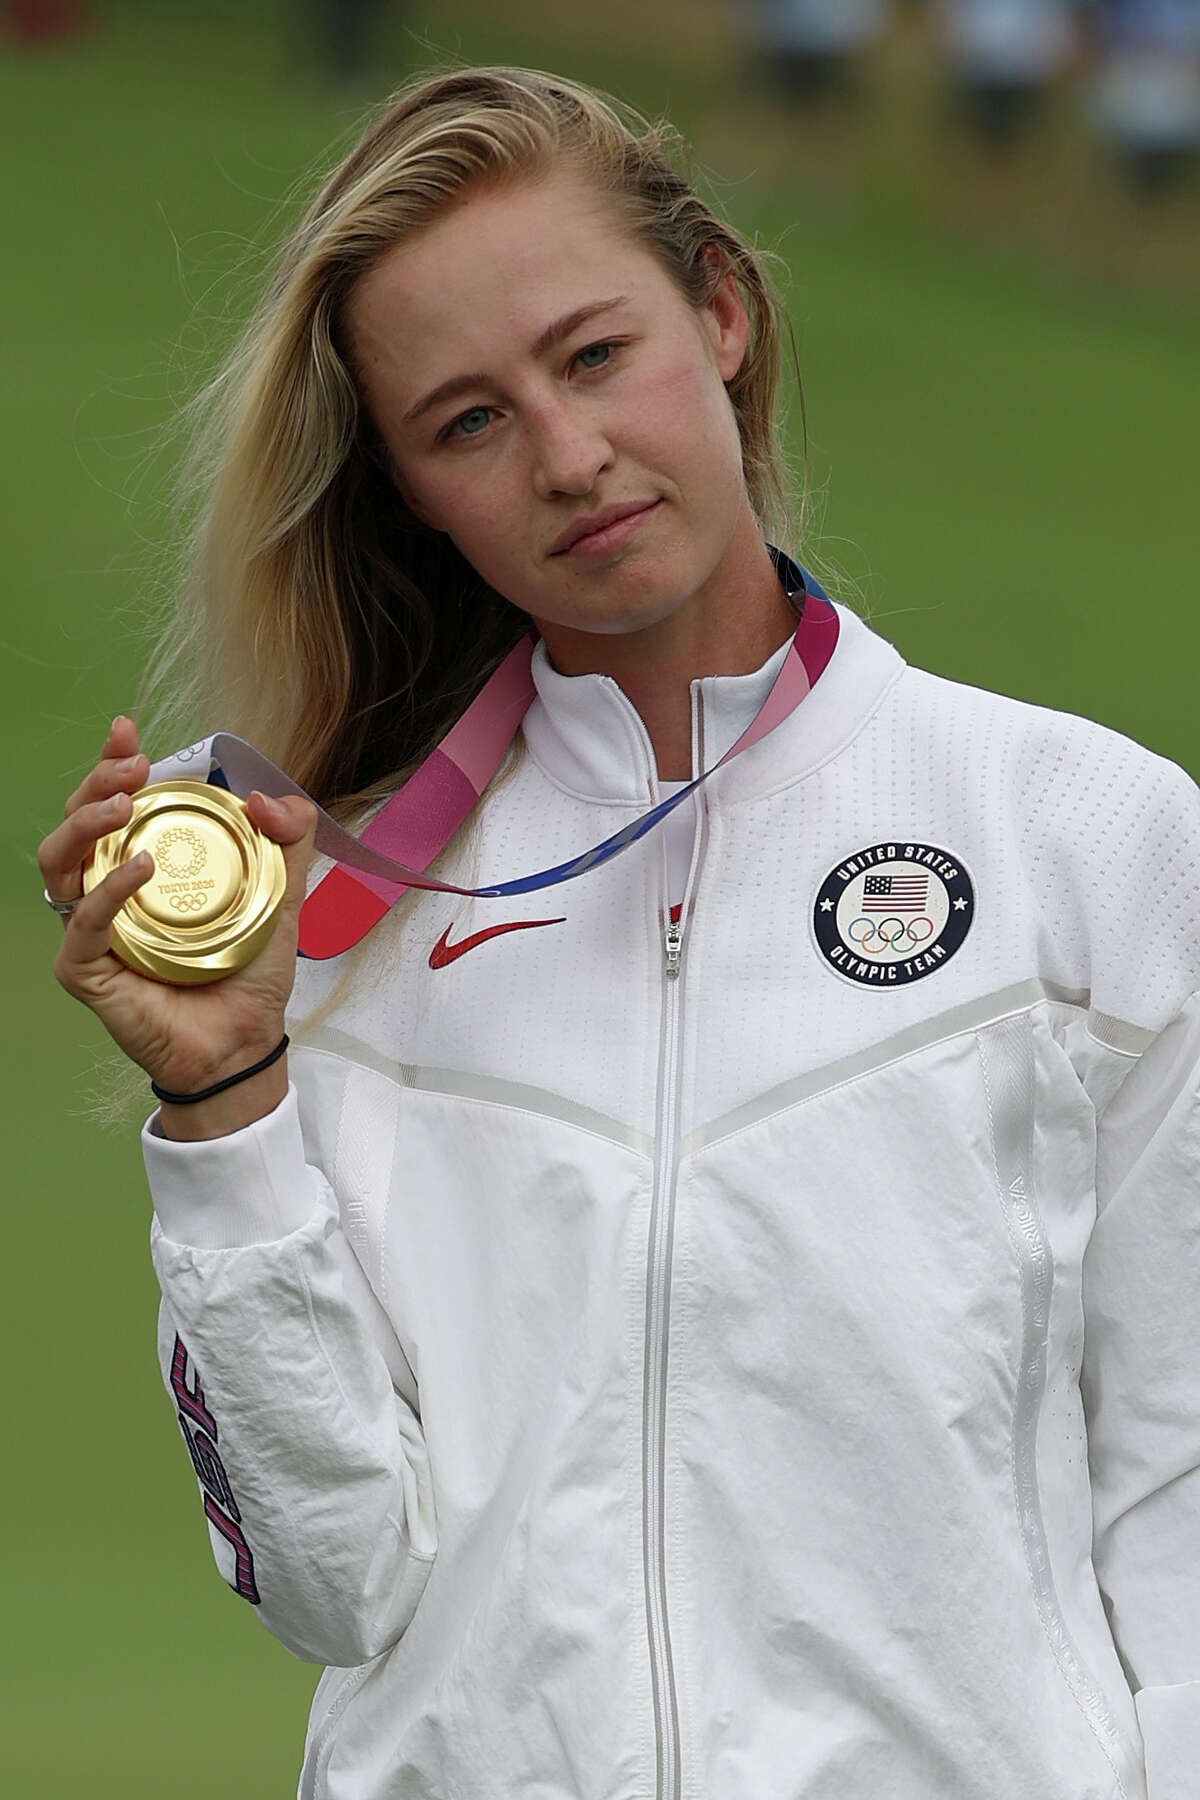 KAWAGOE, JAPAN - AUGUST 07: Nelly Korda of Team United States celebrates with the gold medal at the victory ceremony after the final round of the Women's Individual Stroke Play on day fifteen of the Tokyo 2020 Olympic Games at Kasumigaseki Country Club on August 07, 2021 in Kawagoe, Japan.